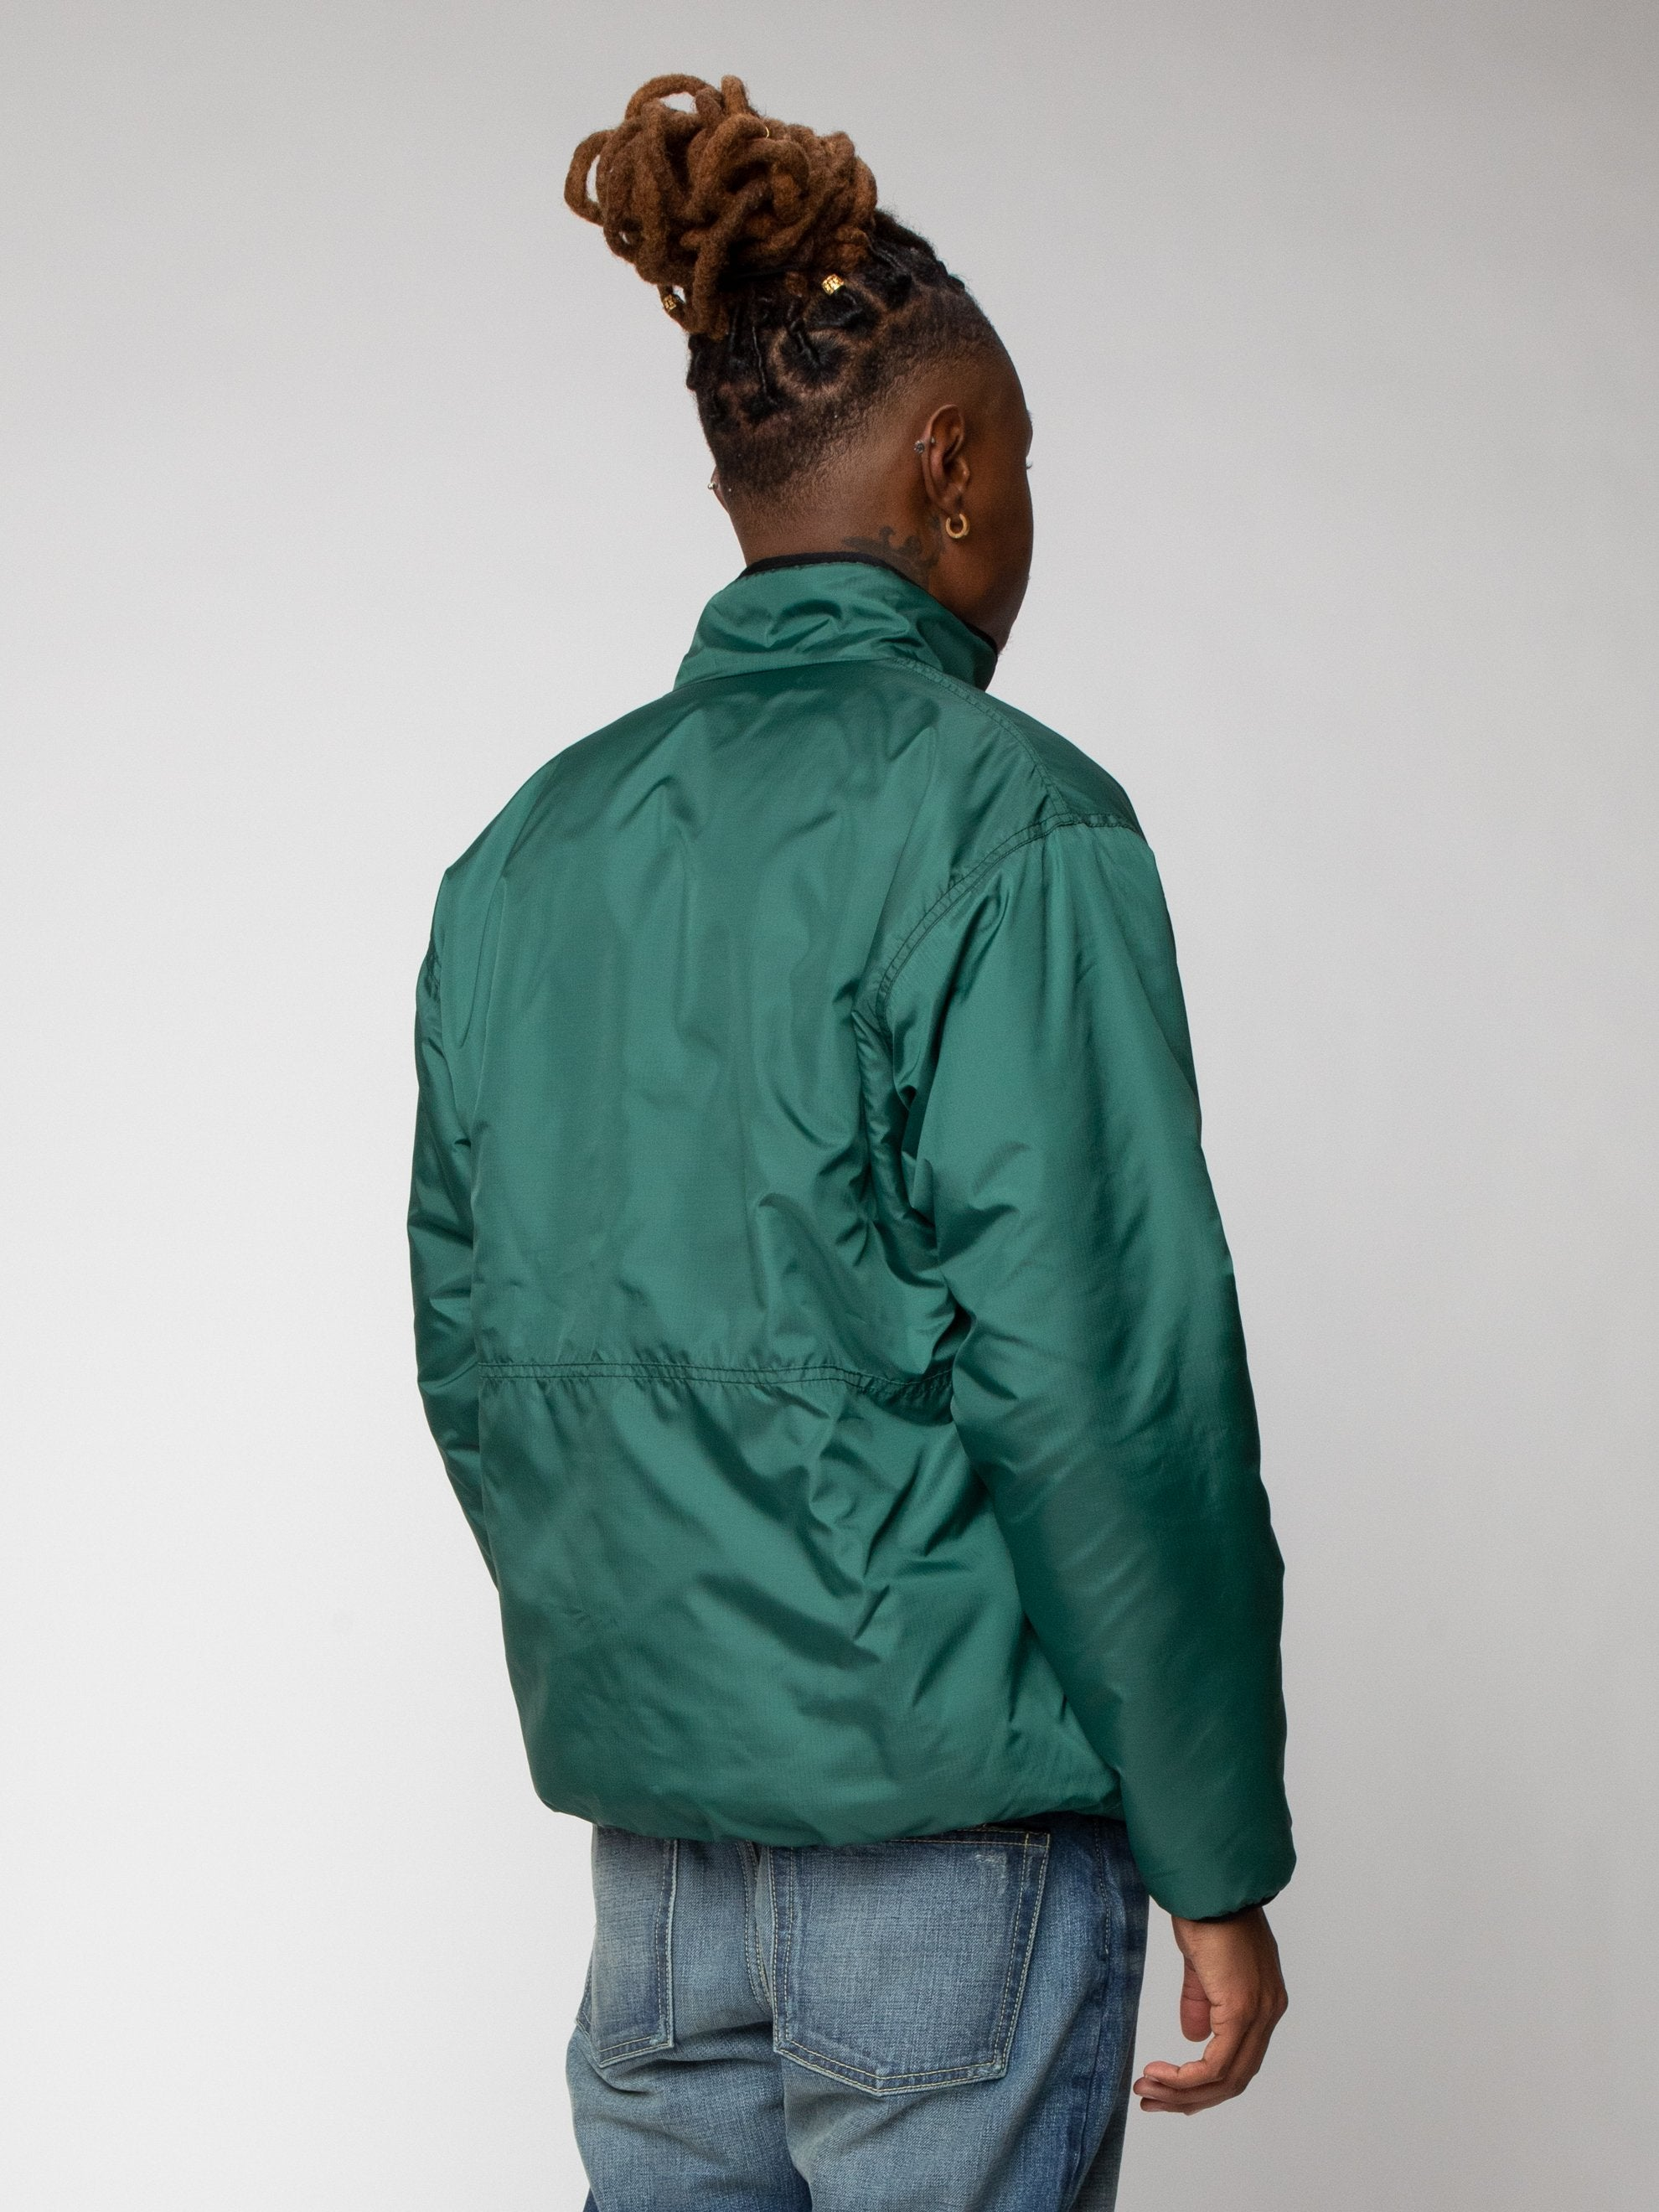 Green Reversible Boa Fleece Jacket 6